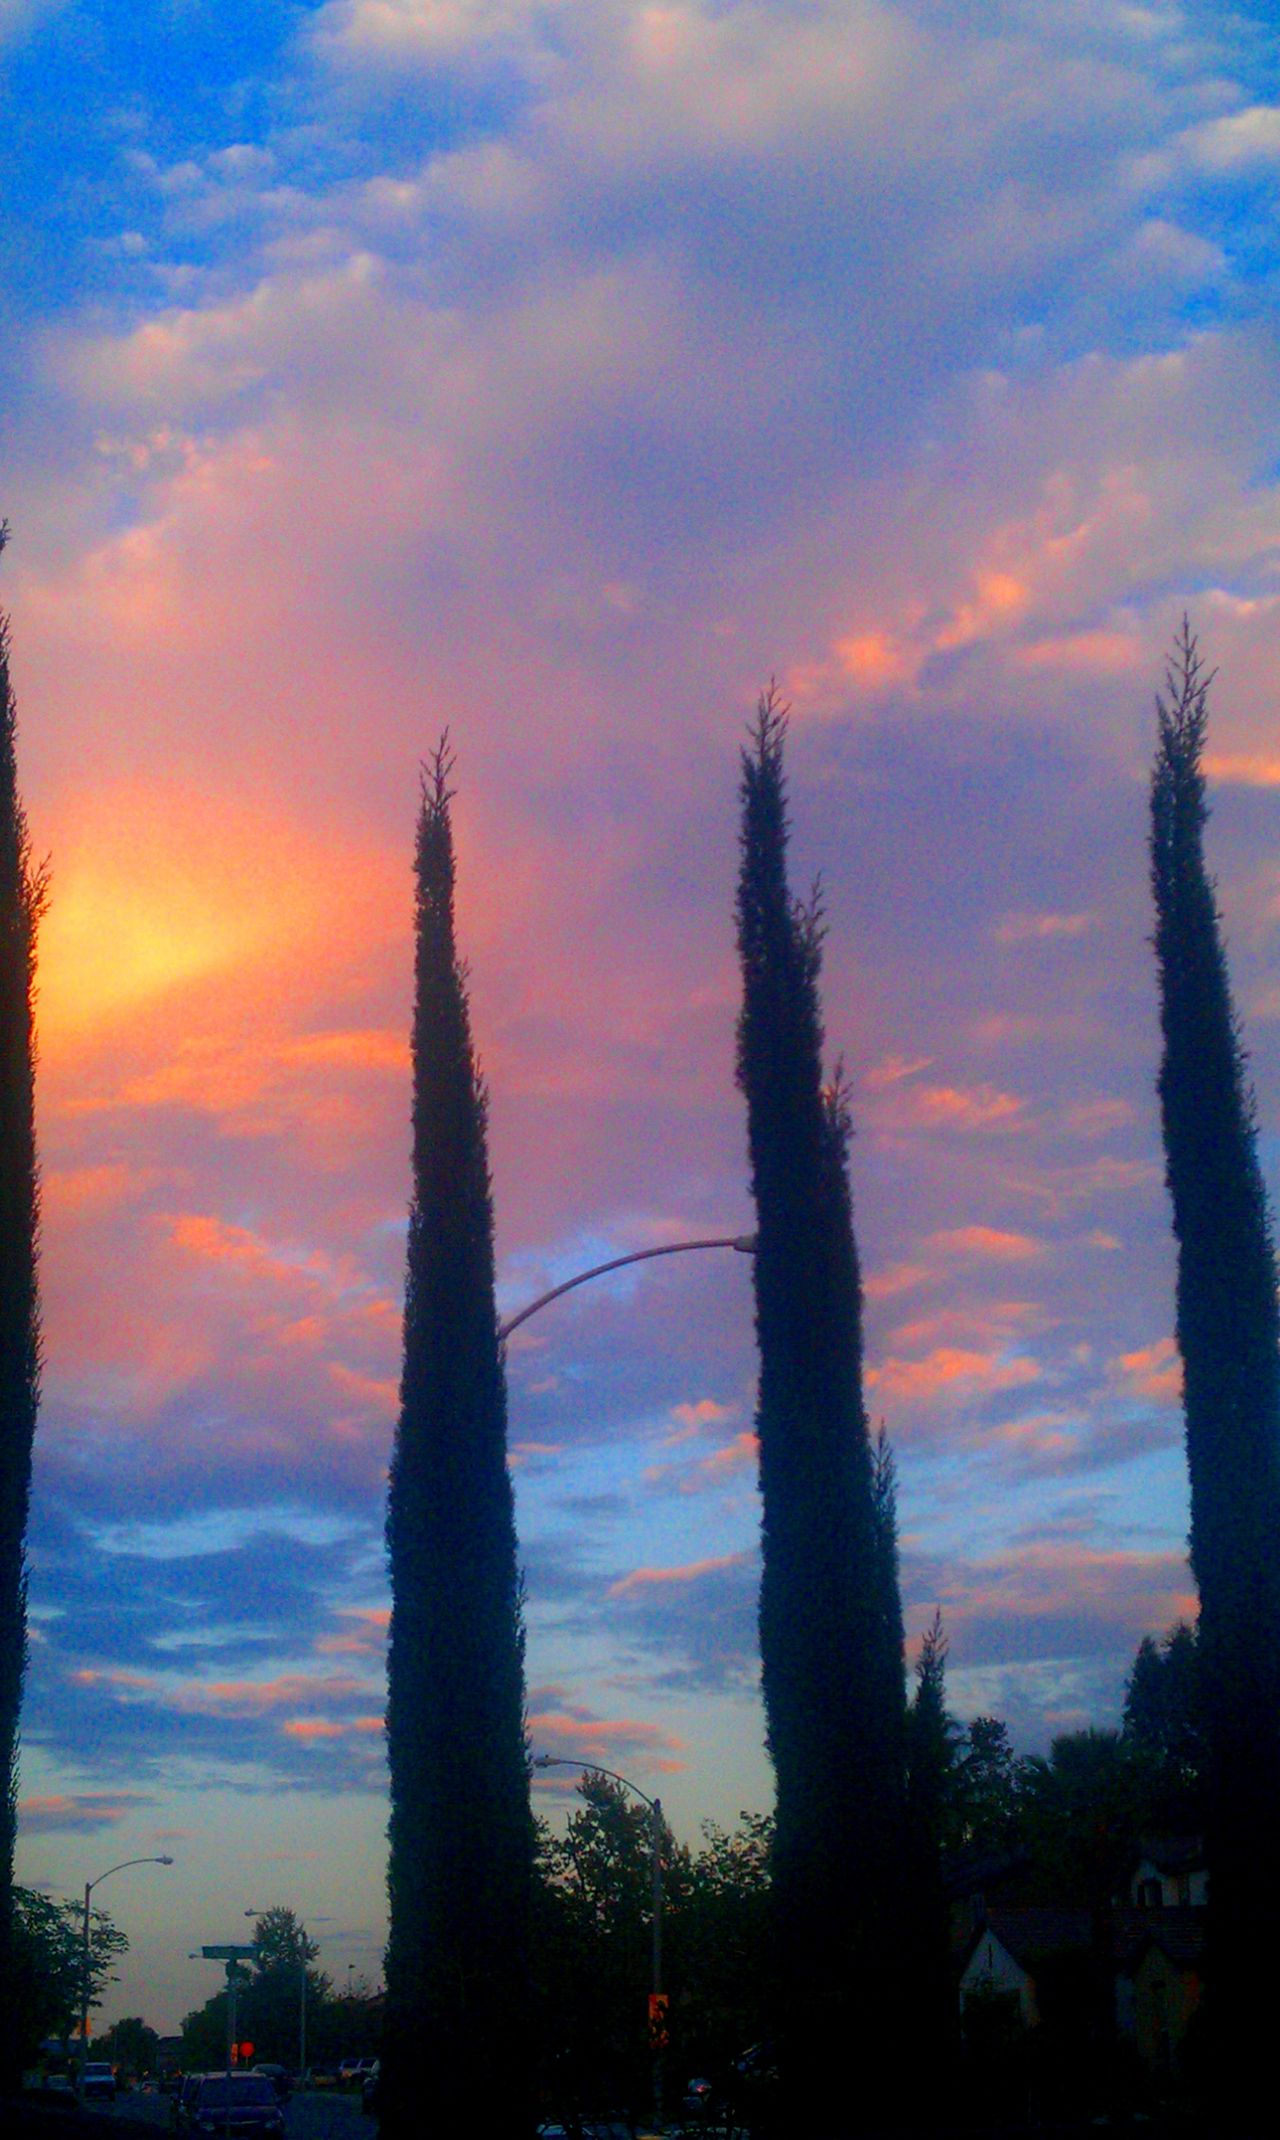 Taking Photos Sky And Clouds Trees Clouds Sky Purple Sky Pink Sky Red Sky Blue Color Blue Sky Outdoors Home Is Where The Art Is Color Photography Beautiful Day Riverside California Colour Of Life No People, Sunset Ice Age